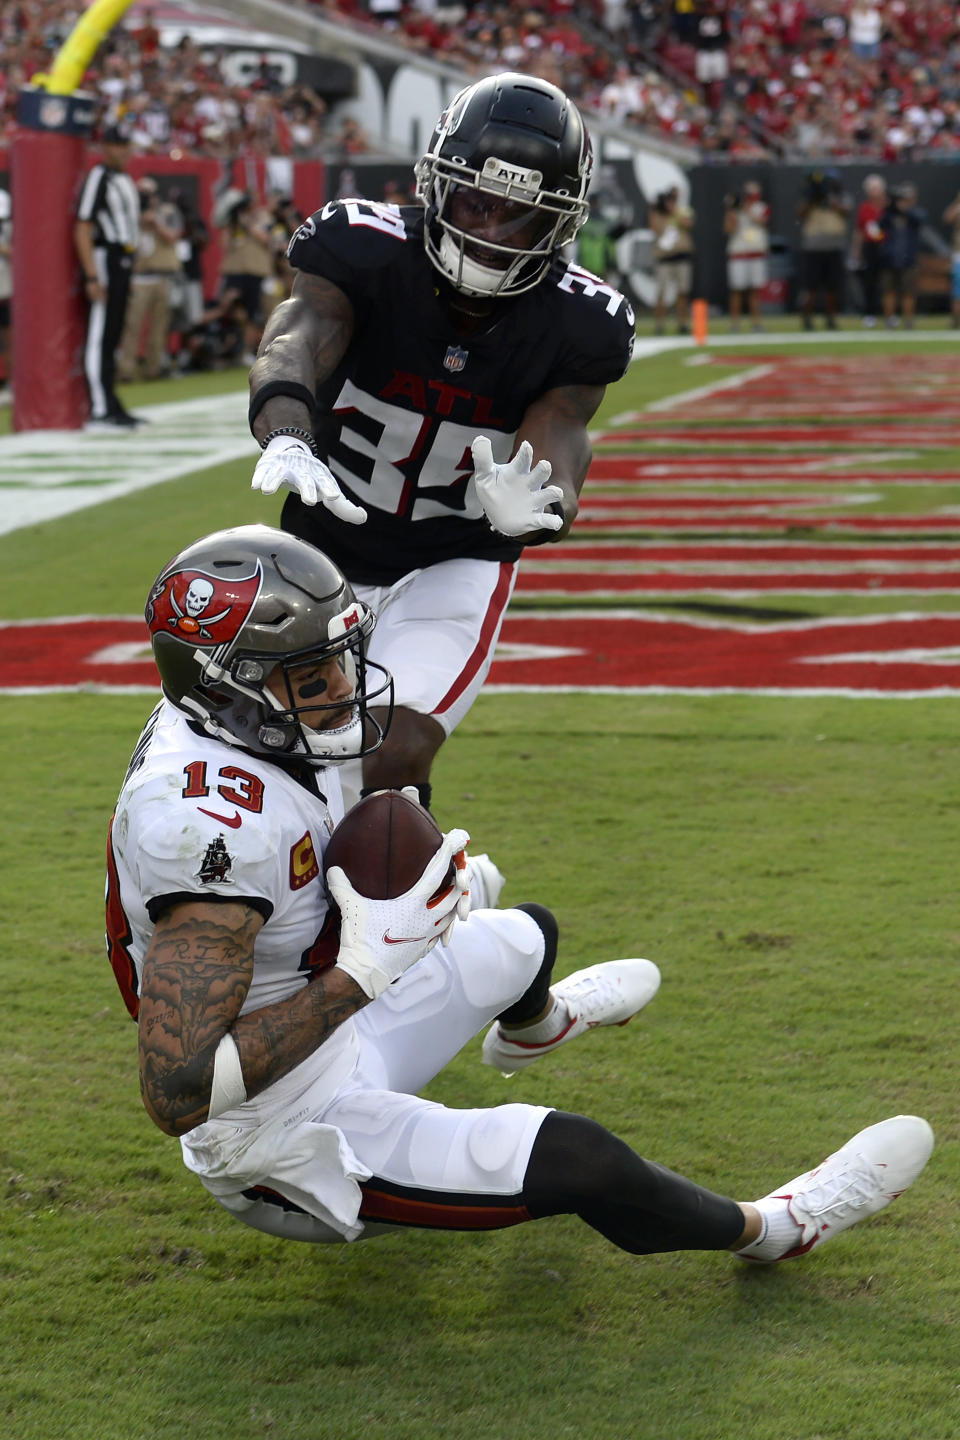 **CORRECTS ATLANTA DEFENDER TO T.J. GREEN**Tampa Bay Buccaneers wide receiver Mike Evans (13) beats Atlanta Falcons defensive back T.J. Green (39) on a 1-yard touchdown reception during the second half of an NFL football game Sunday, Sept. 19, 2021, in Tampa, Fla. (AP Photo/Jason Behnken)